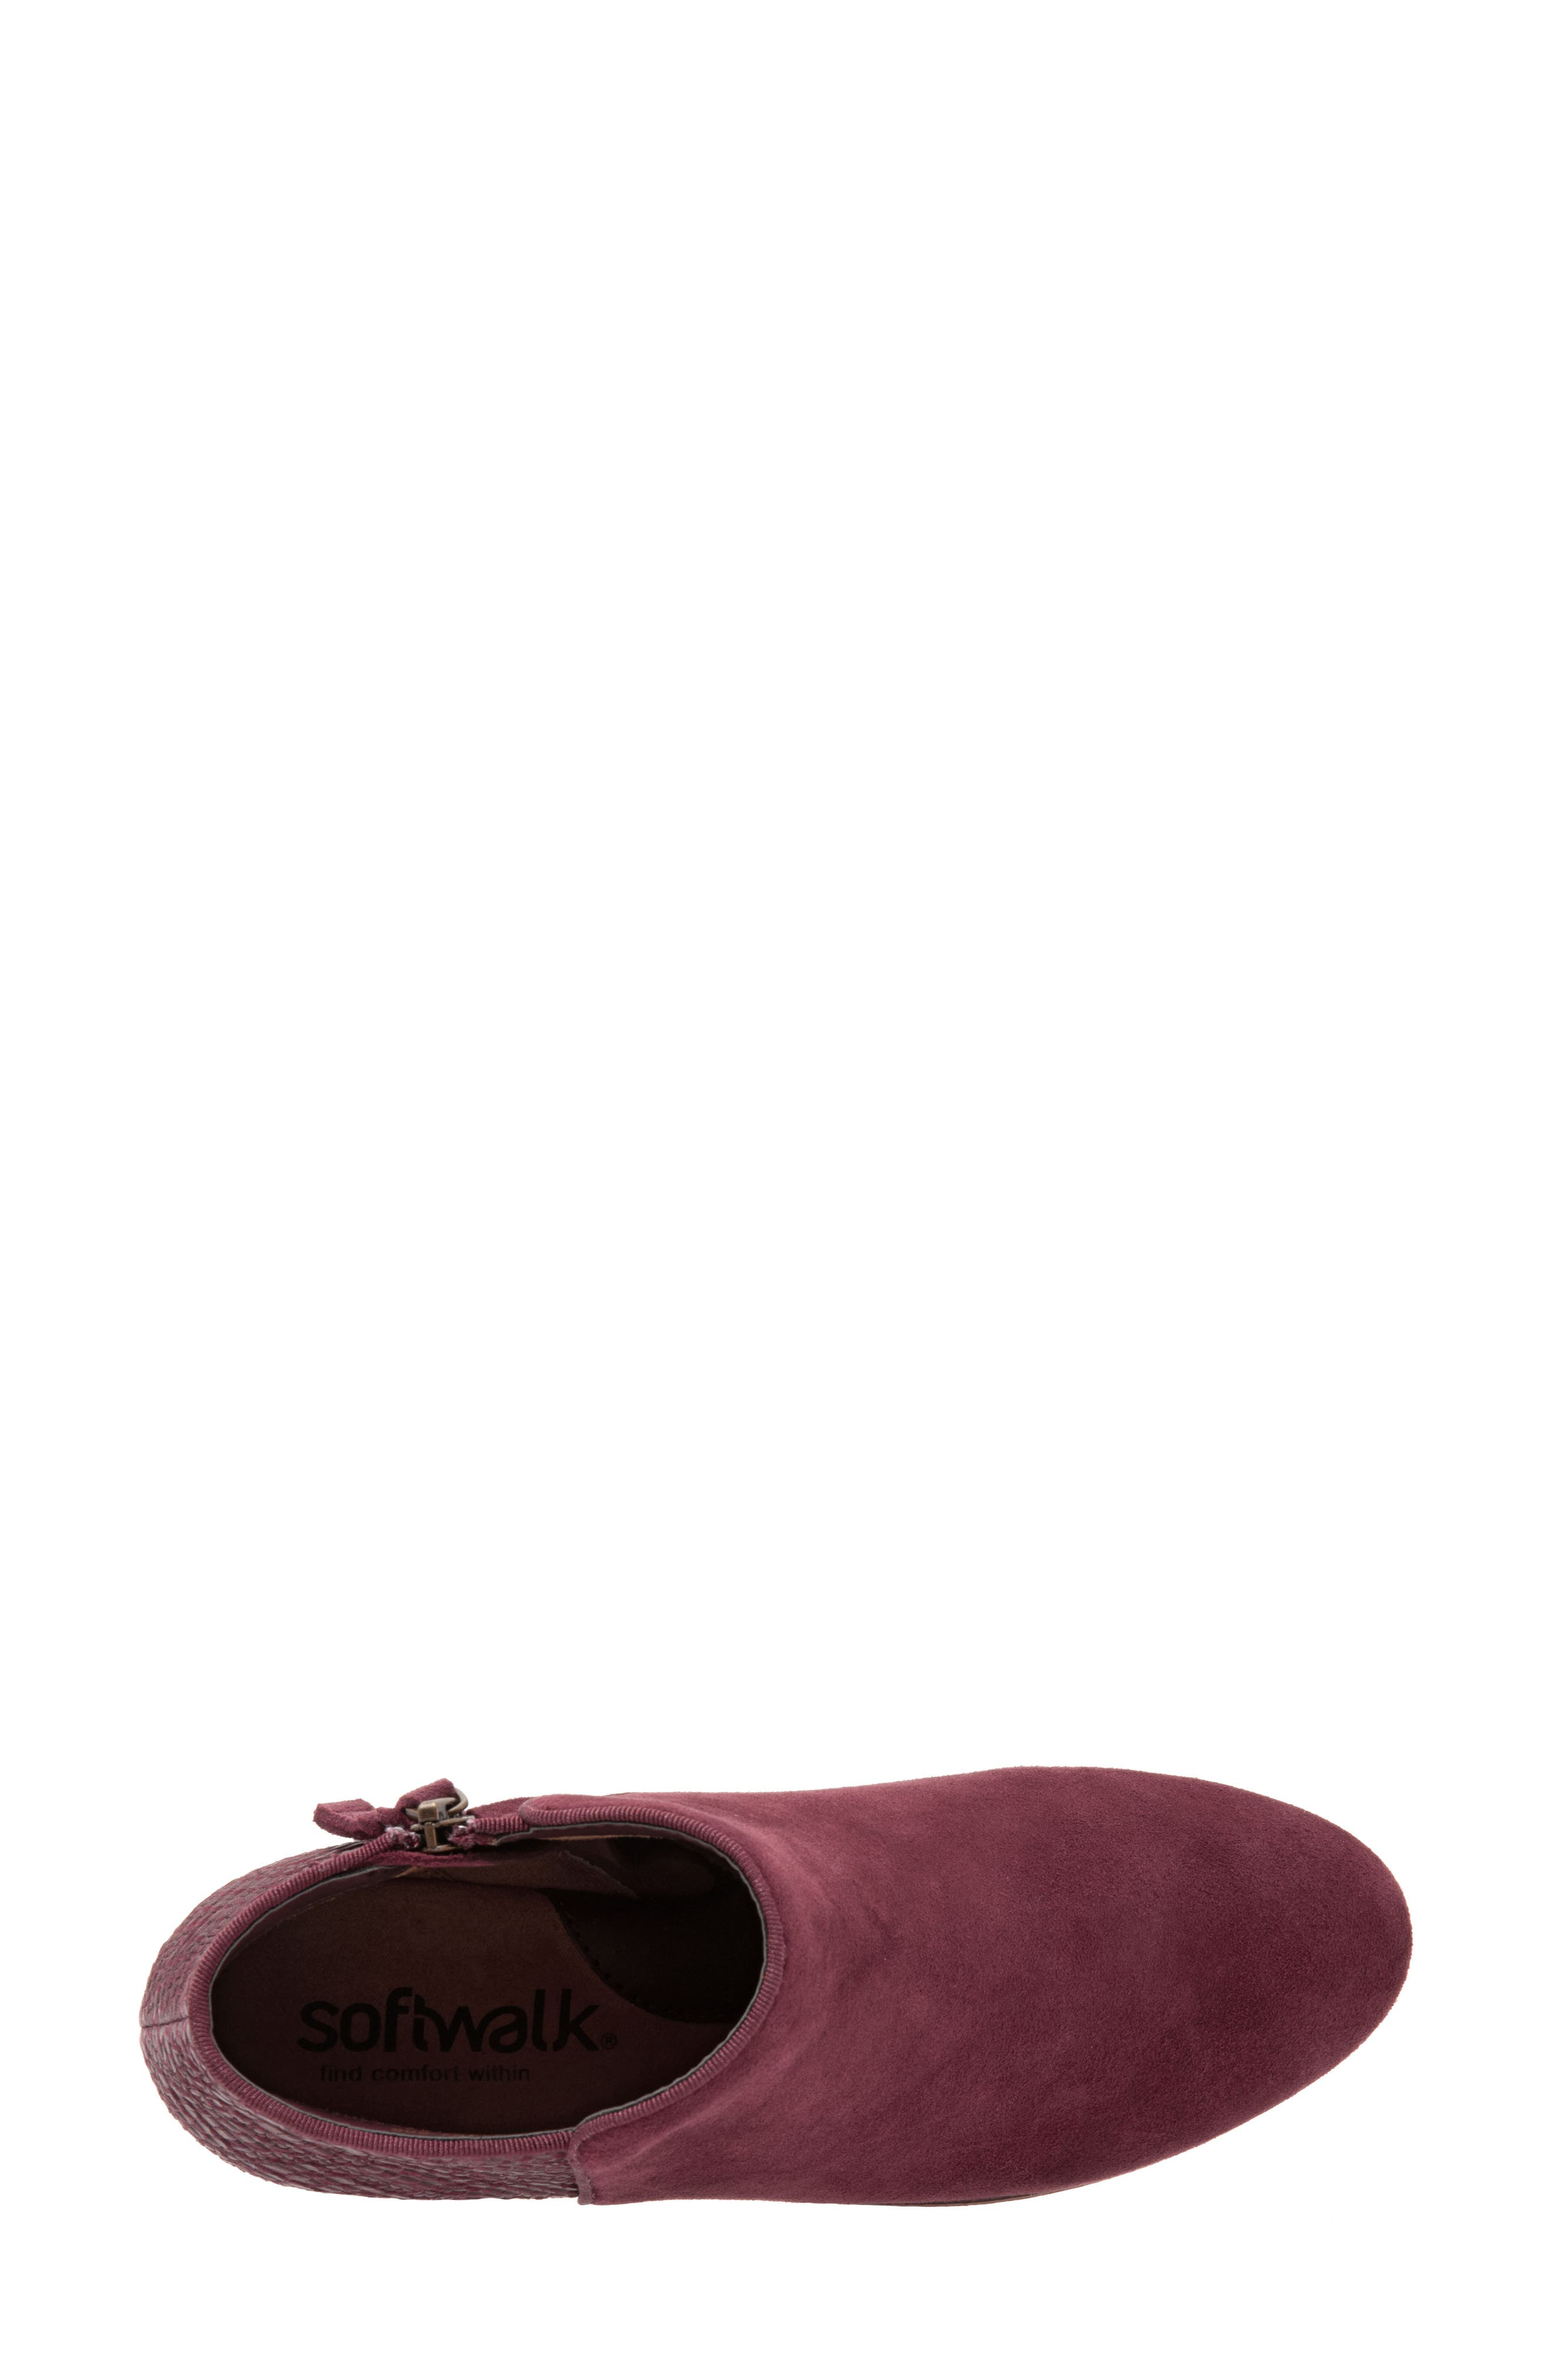 'Rocklin' Bootie,                             Alternate thumbnail 4, color,                             BURGUNDY LEATHER